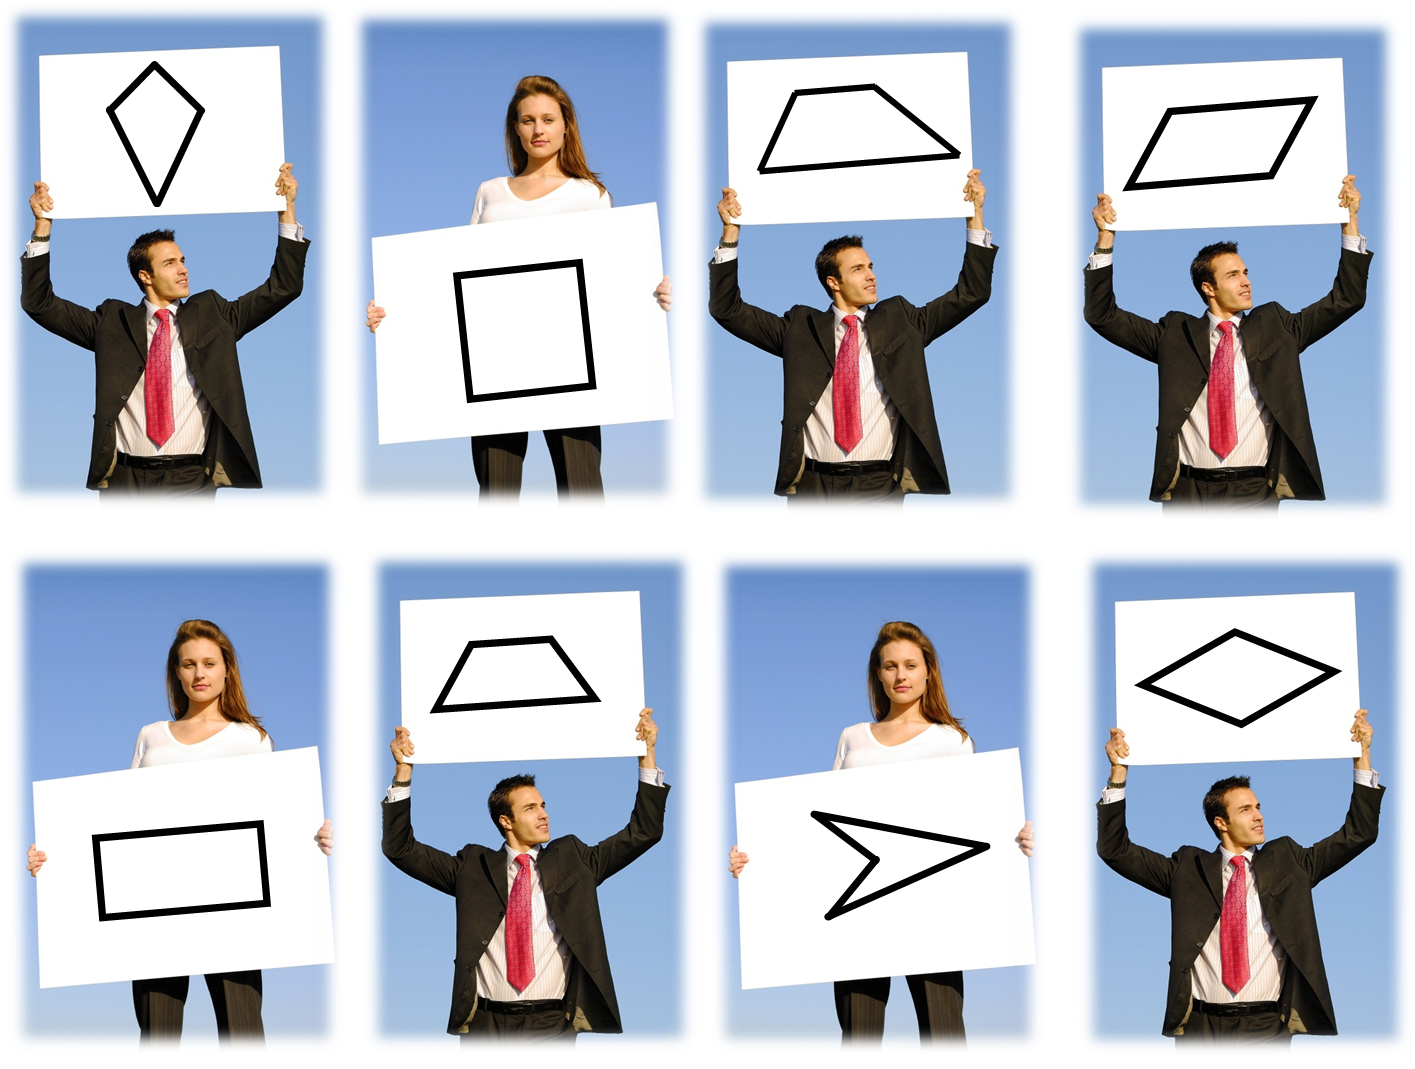 Median don steward mathematics. Square clipart quadrilateral shape